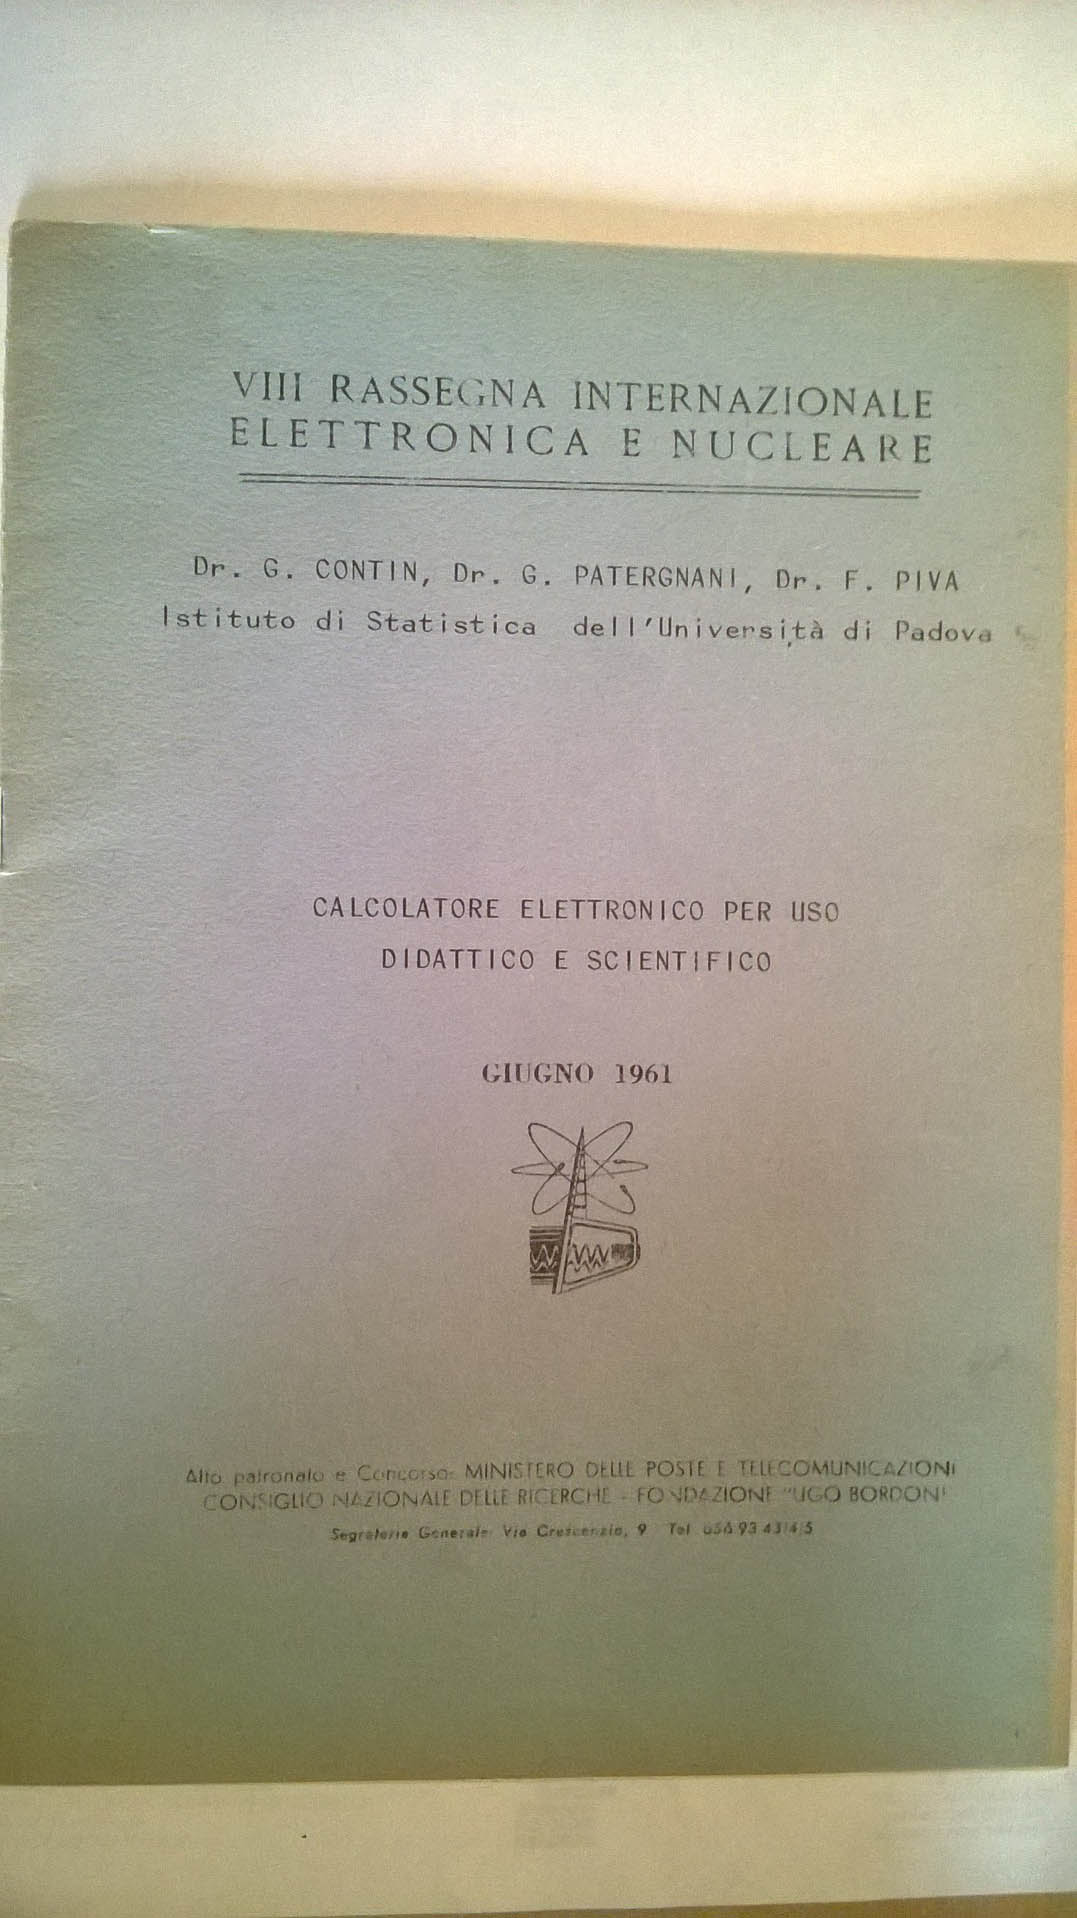 "G., Patergnani G., Piva F. ""Calcolatore elettronico per uso didattico e scientifico."" Abstract from the Proceedings of the VIII Rassegna internazionale elettronica e nucleare. Roma, 1961"